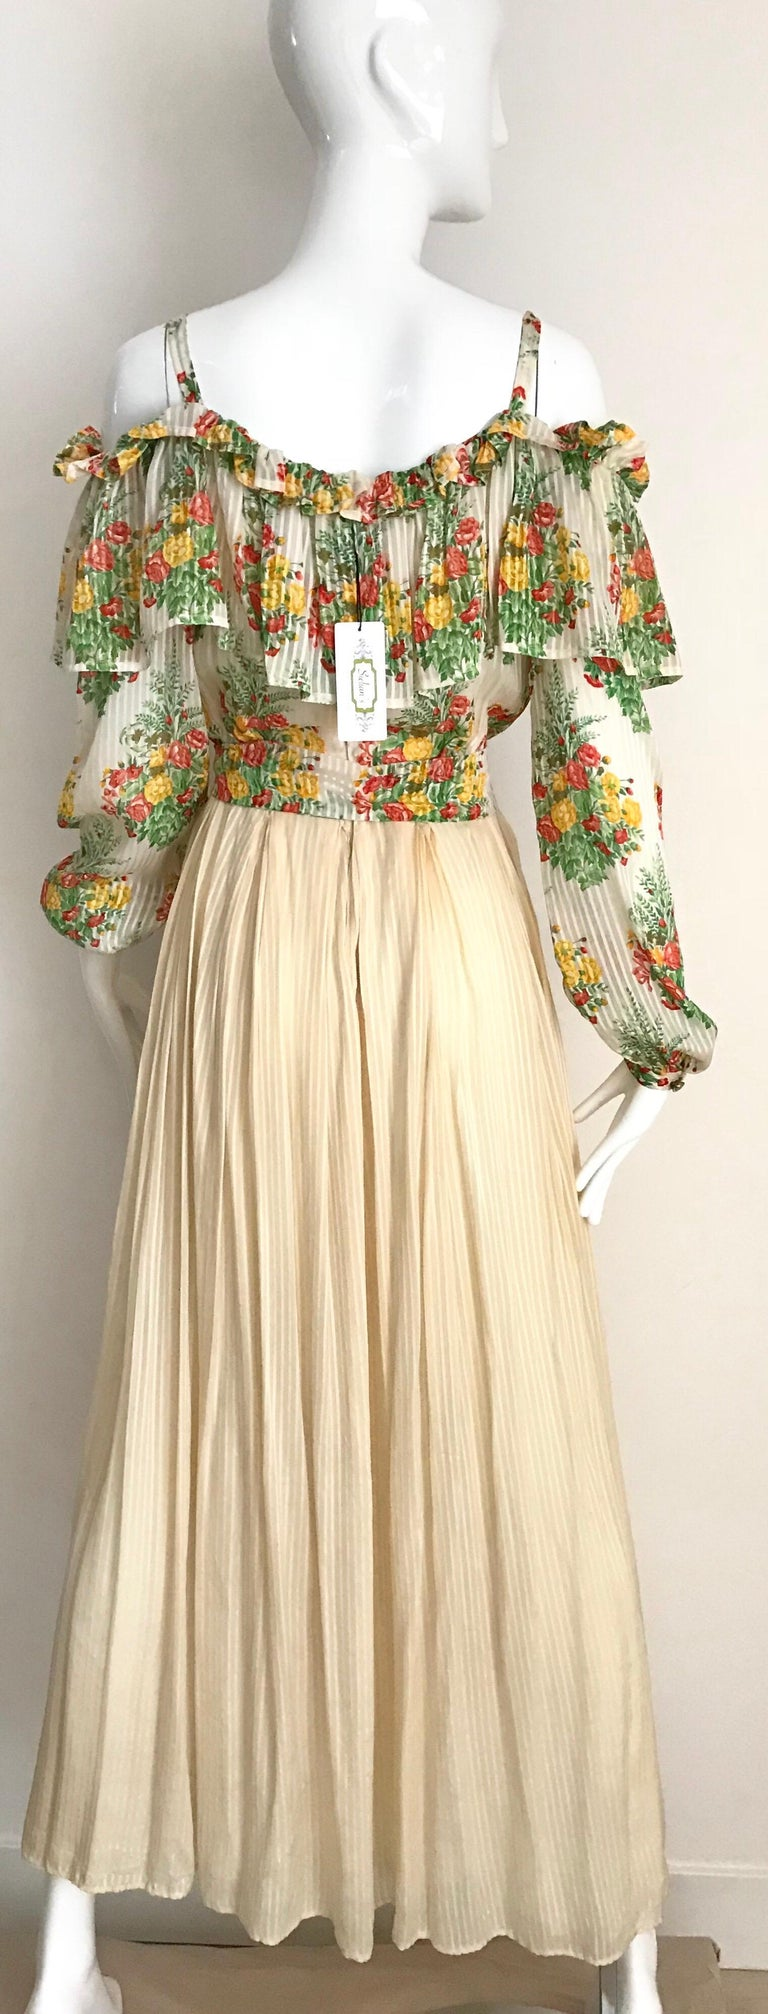 Andre Laug Creme Silk Floral Print Maxi Dress, 1970s  For Sale 5